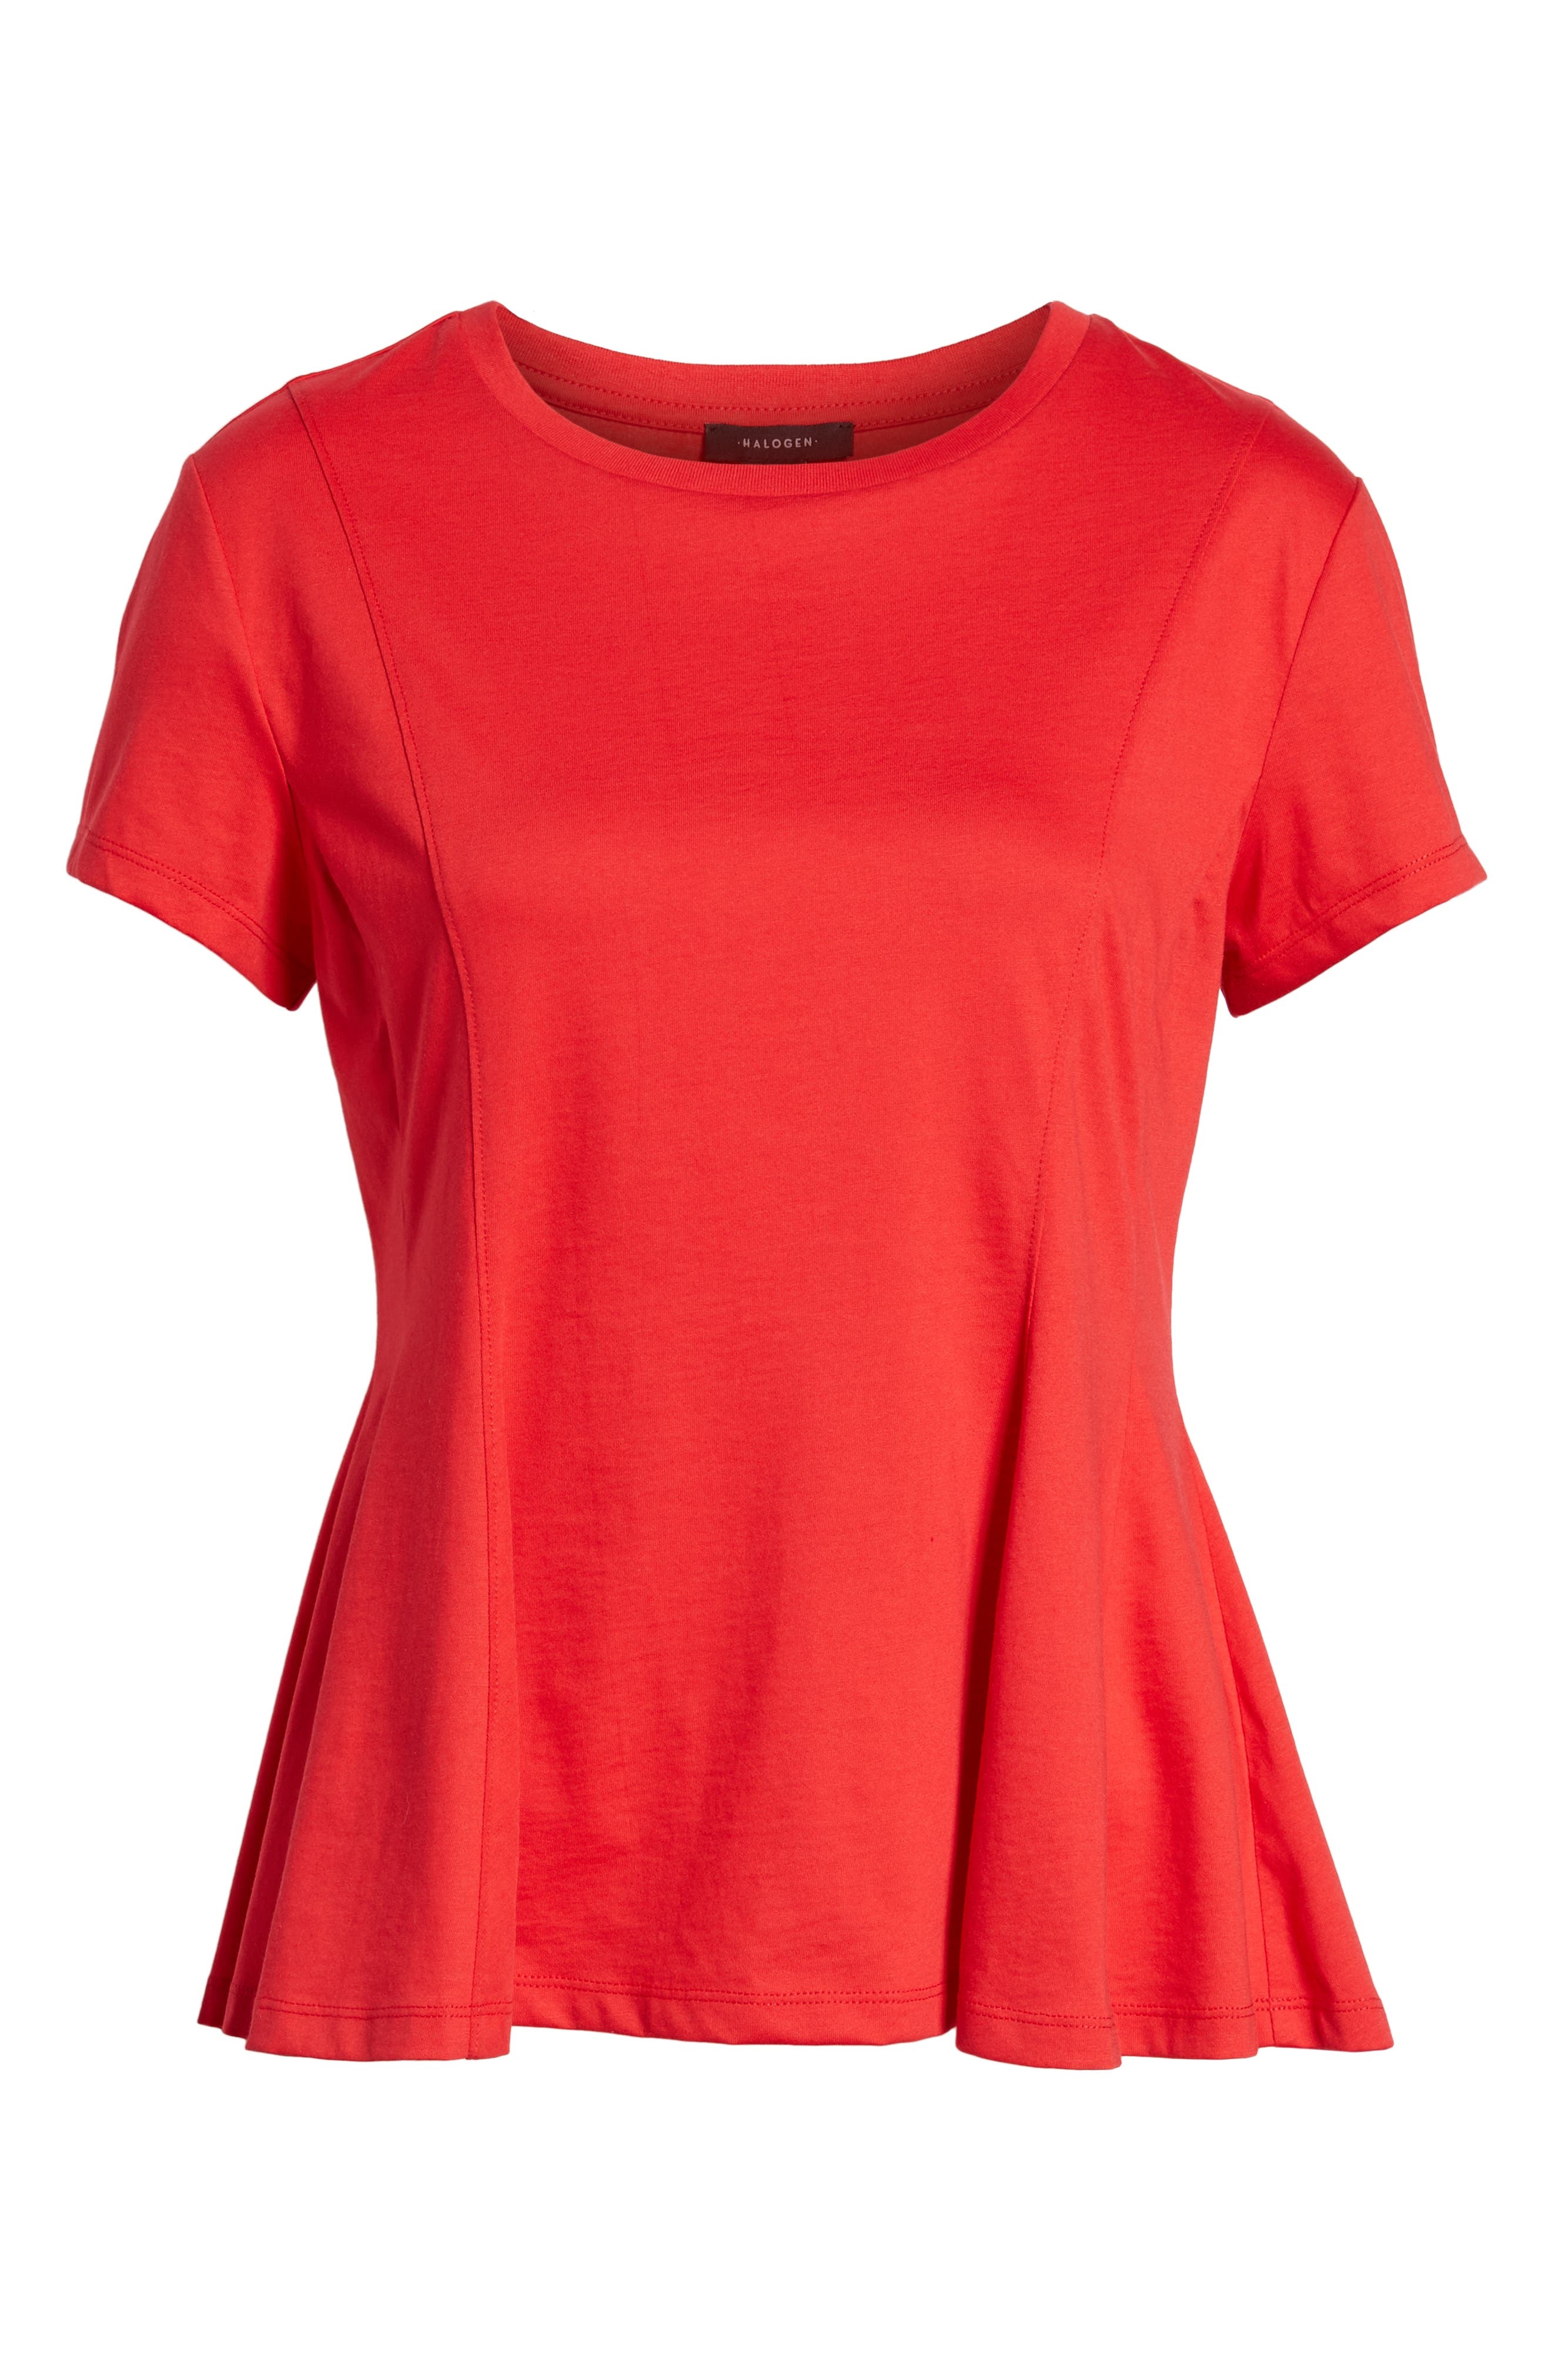 Swing Tee,                             Alternate thumbnail 7, color,                             Red Lipstick